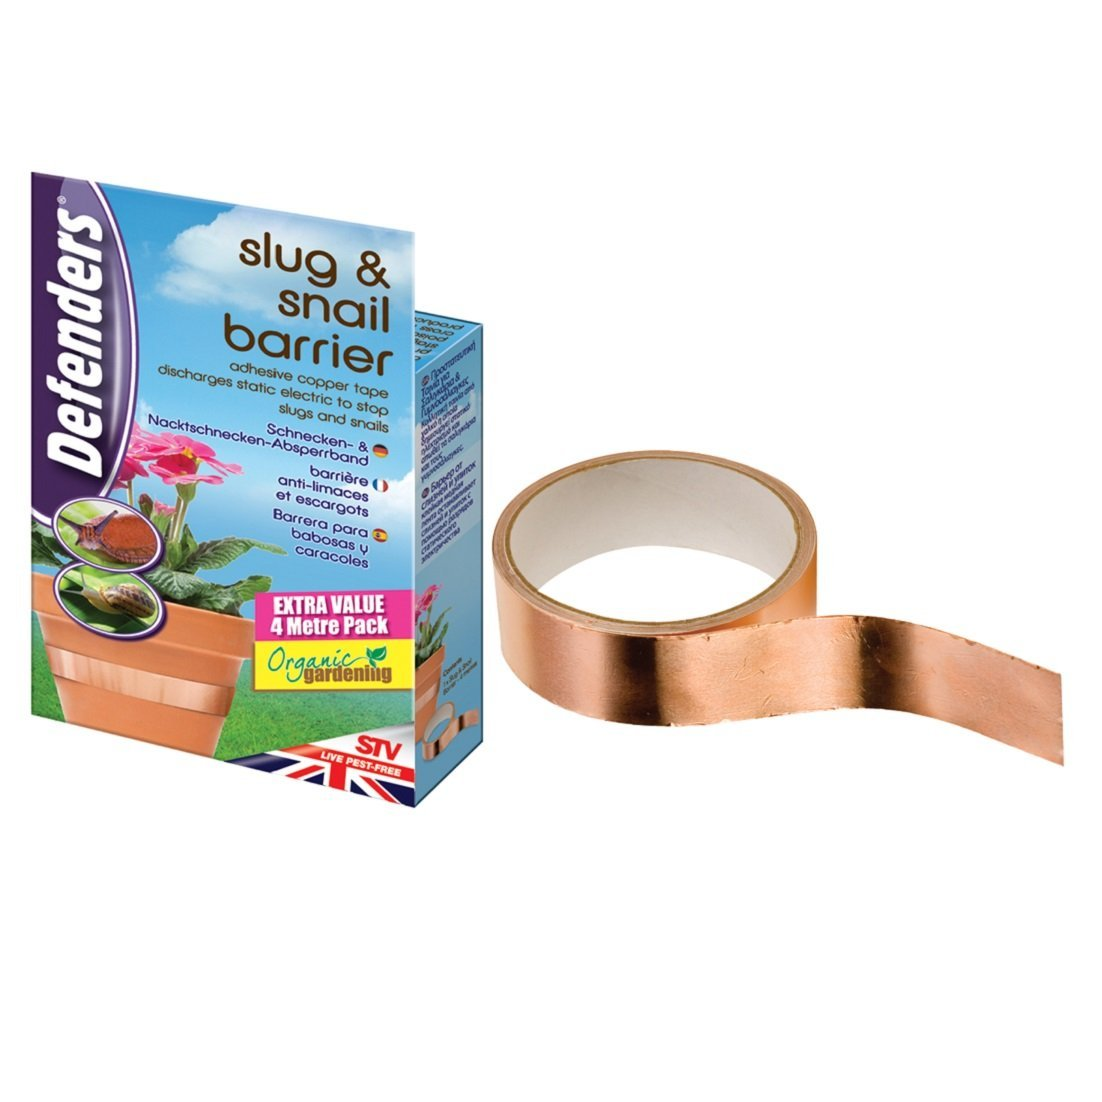 Defenders 4 m Slug and Snail Barrier Tape (Copper Tape, Natural Slug  Deterrent, Anti Slug Repellent Strips): Amazon.co.uk: Garden & Outdoors